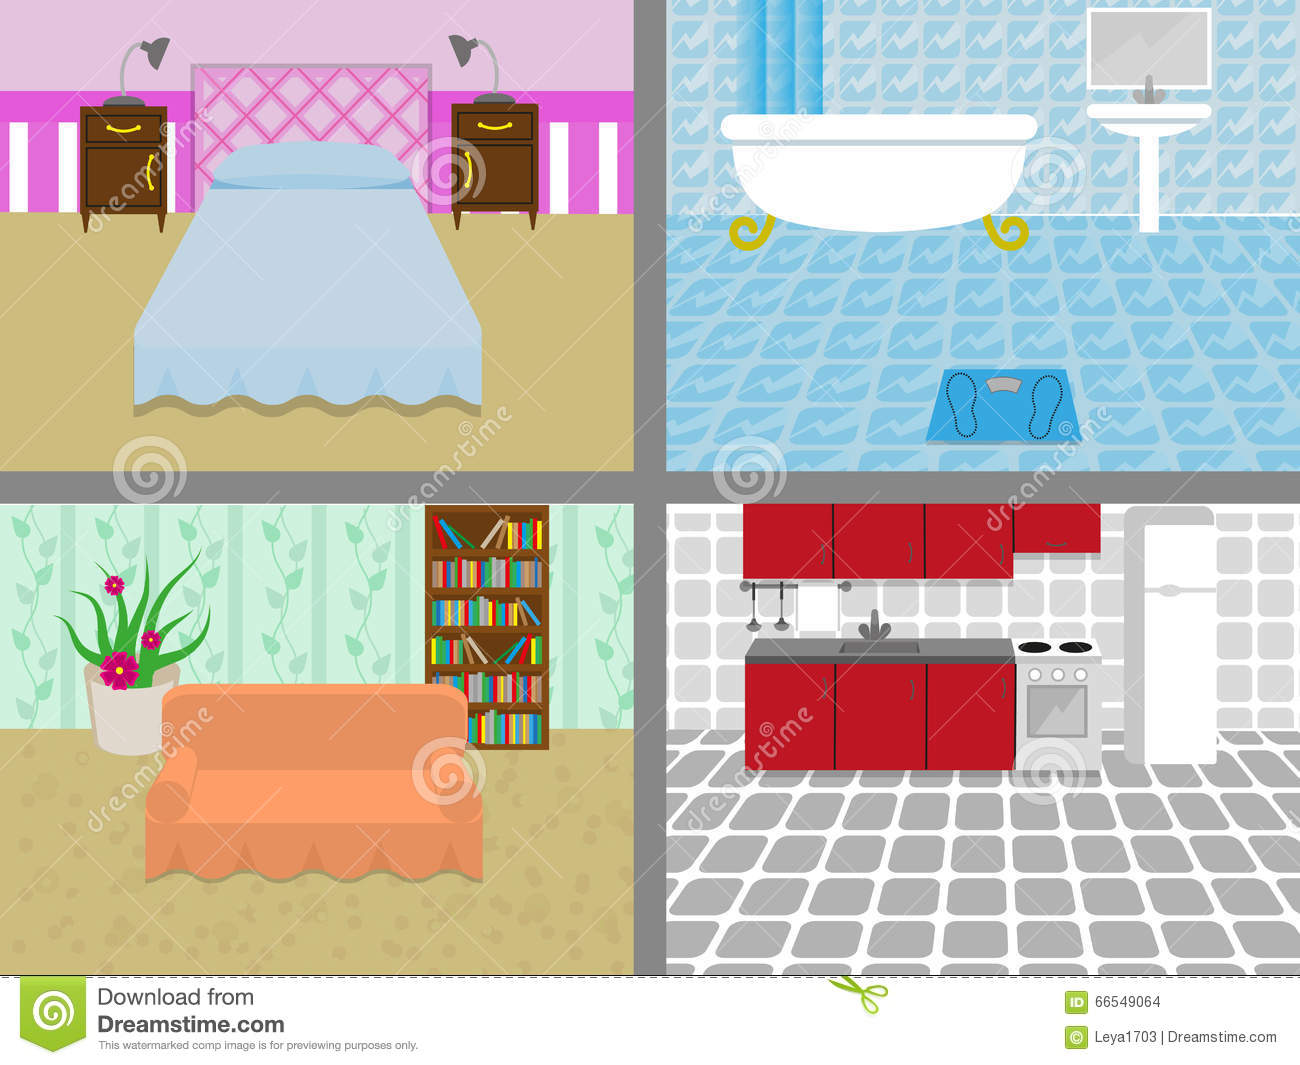 living room bedroom bathroom kitchen a house with rooms stock vector illustration of wallpaper 18975